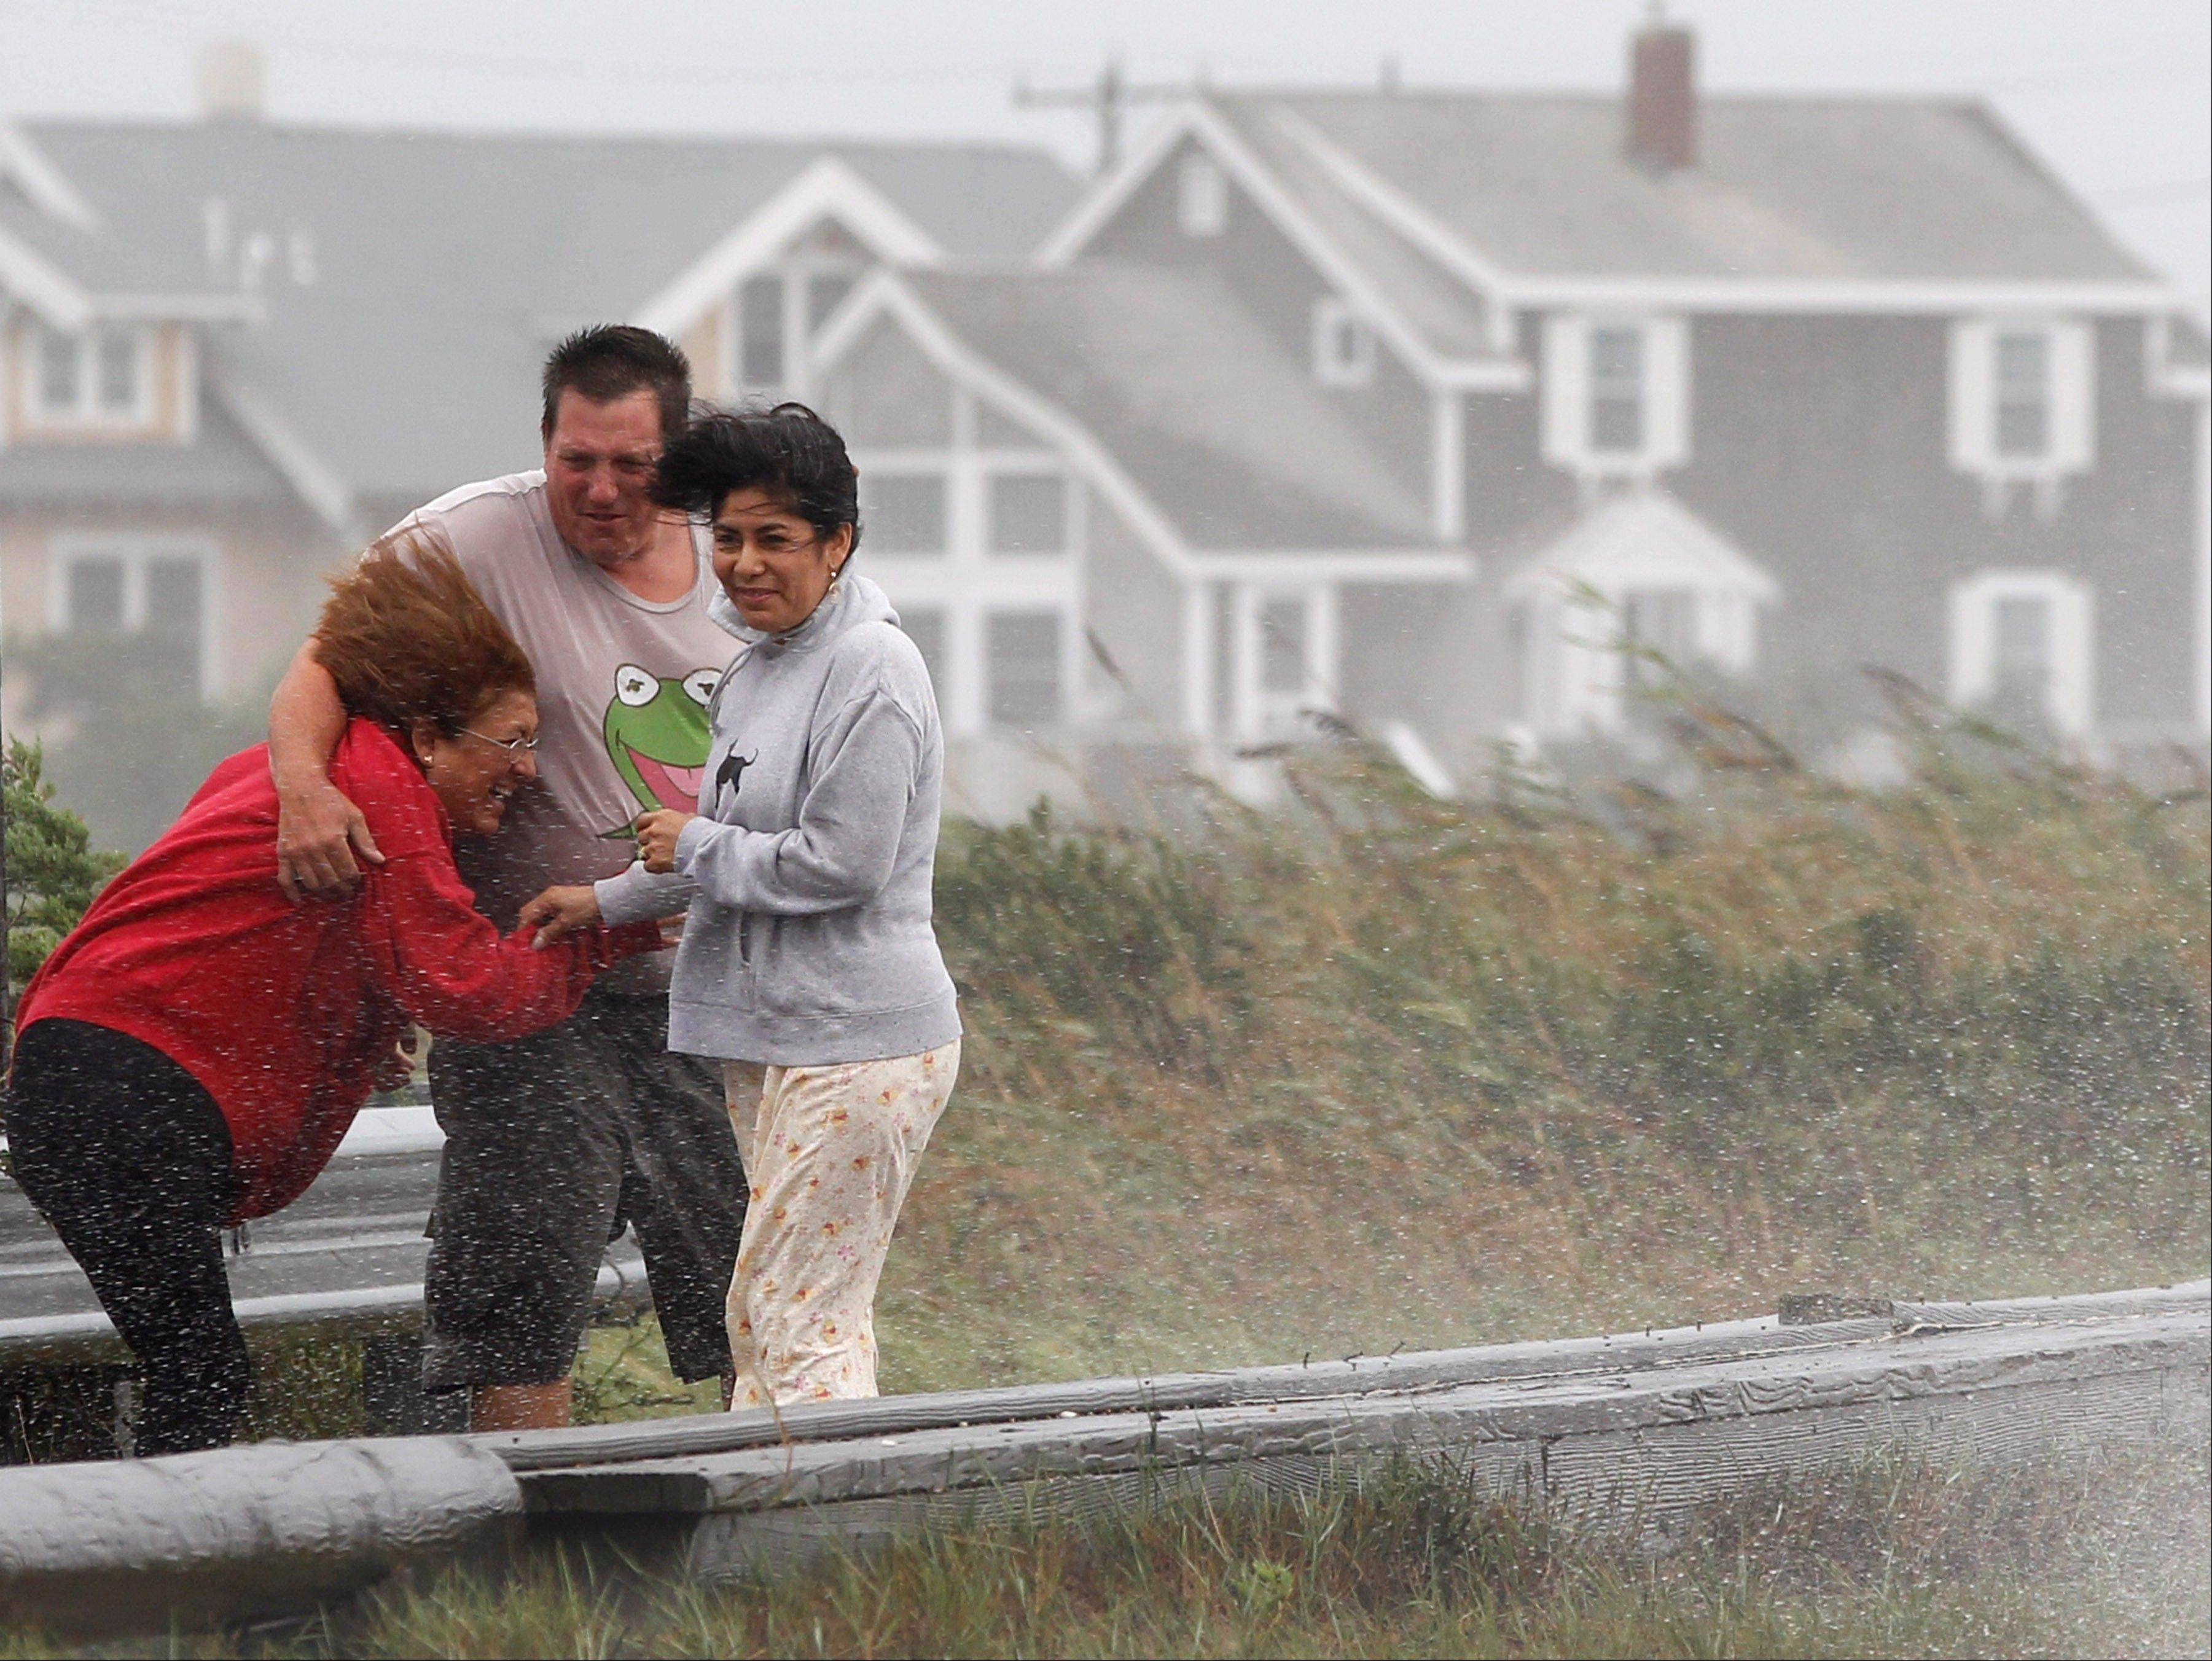 Peter Monaco, of Dunstable, Mass., center, and two unidentified women are buffeted by strong winds from Tropical Storm Irene as they walk along a costal road in Edgartown, Mass., on the island of Martha's Vineyard, Sunday, Aug. 28, 2011. Tropical Storm Irene's gusty winds and rain caused thousands of power outages and flooding Sunday as Massachusetts emergency officials warned that the downgraded storm still posed a significant threat.